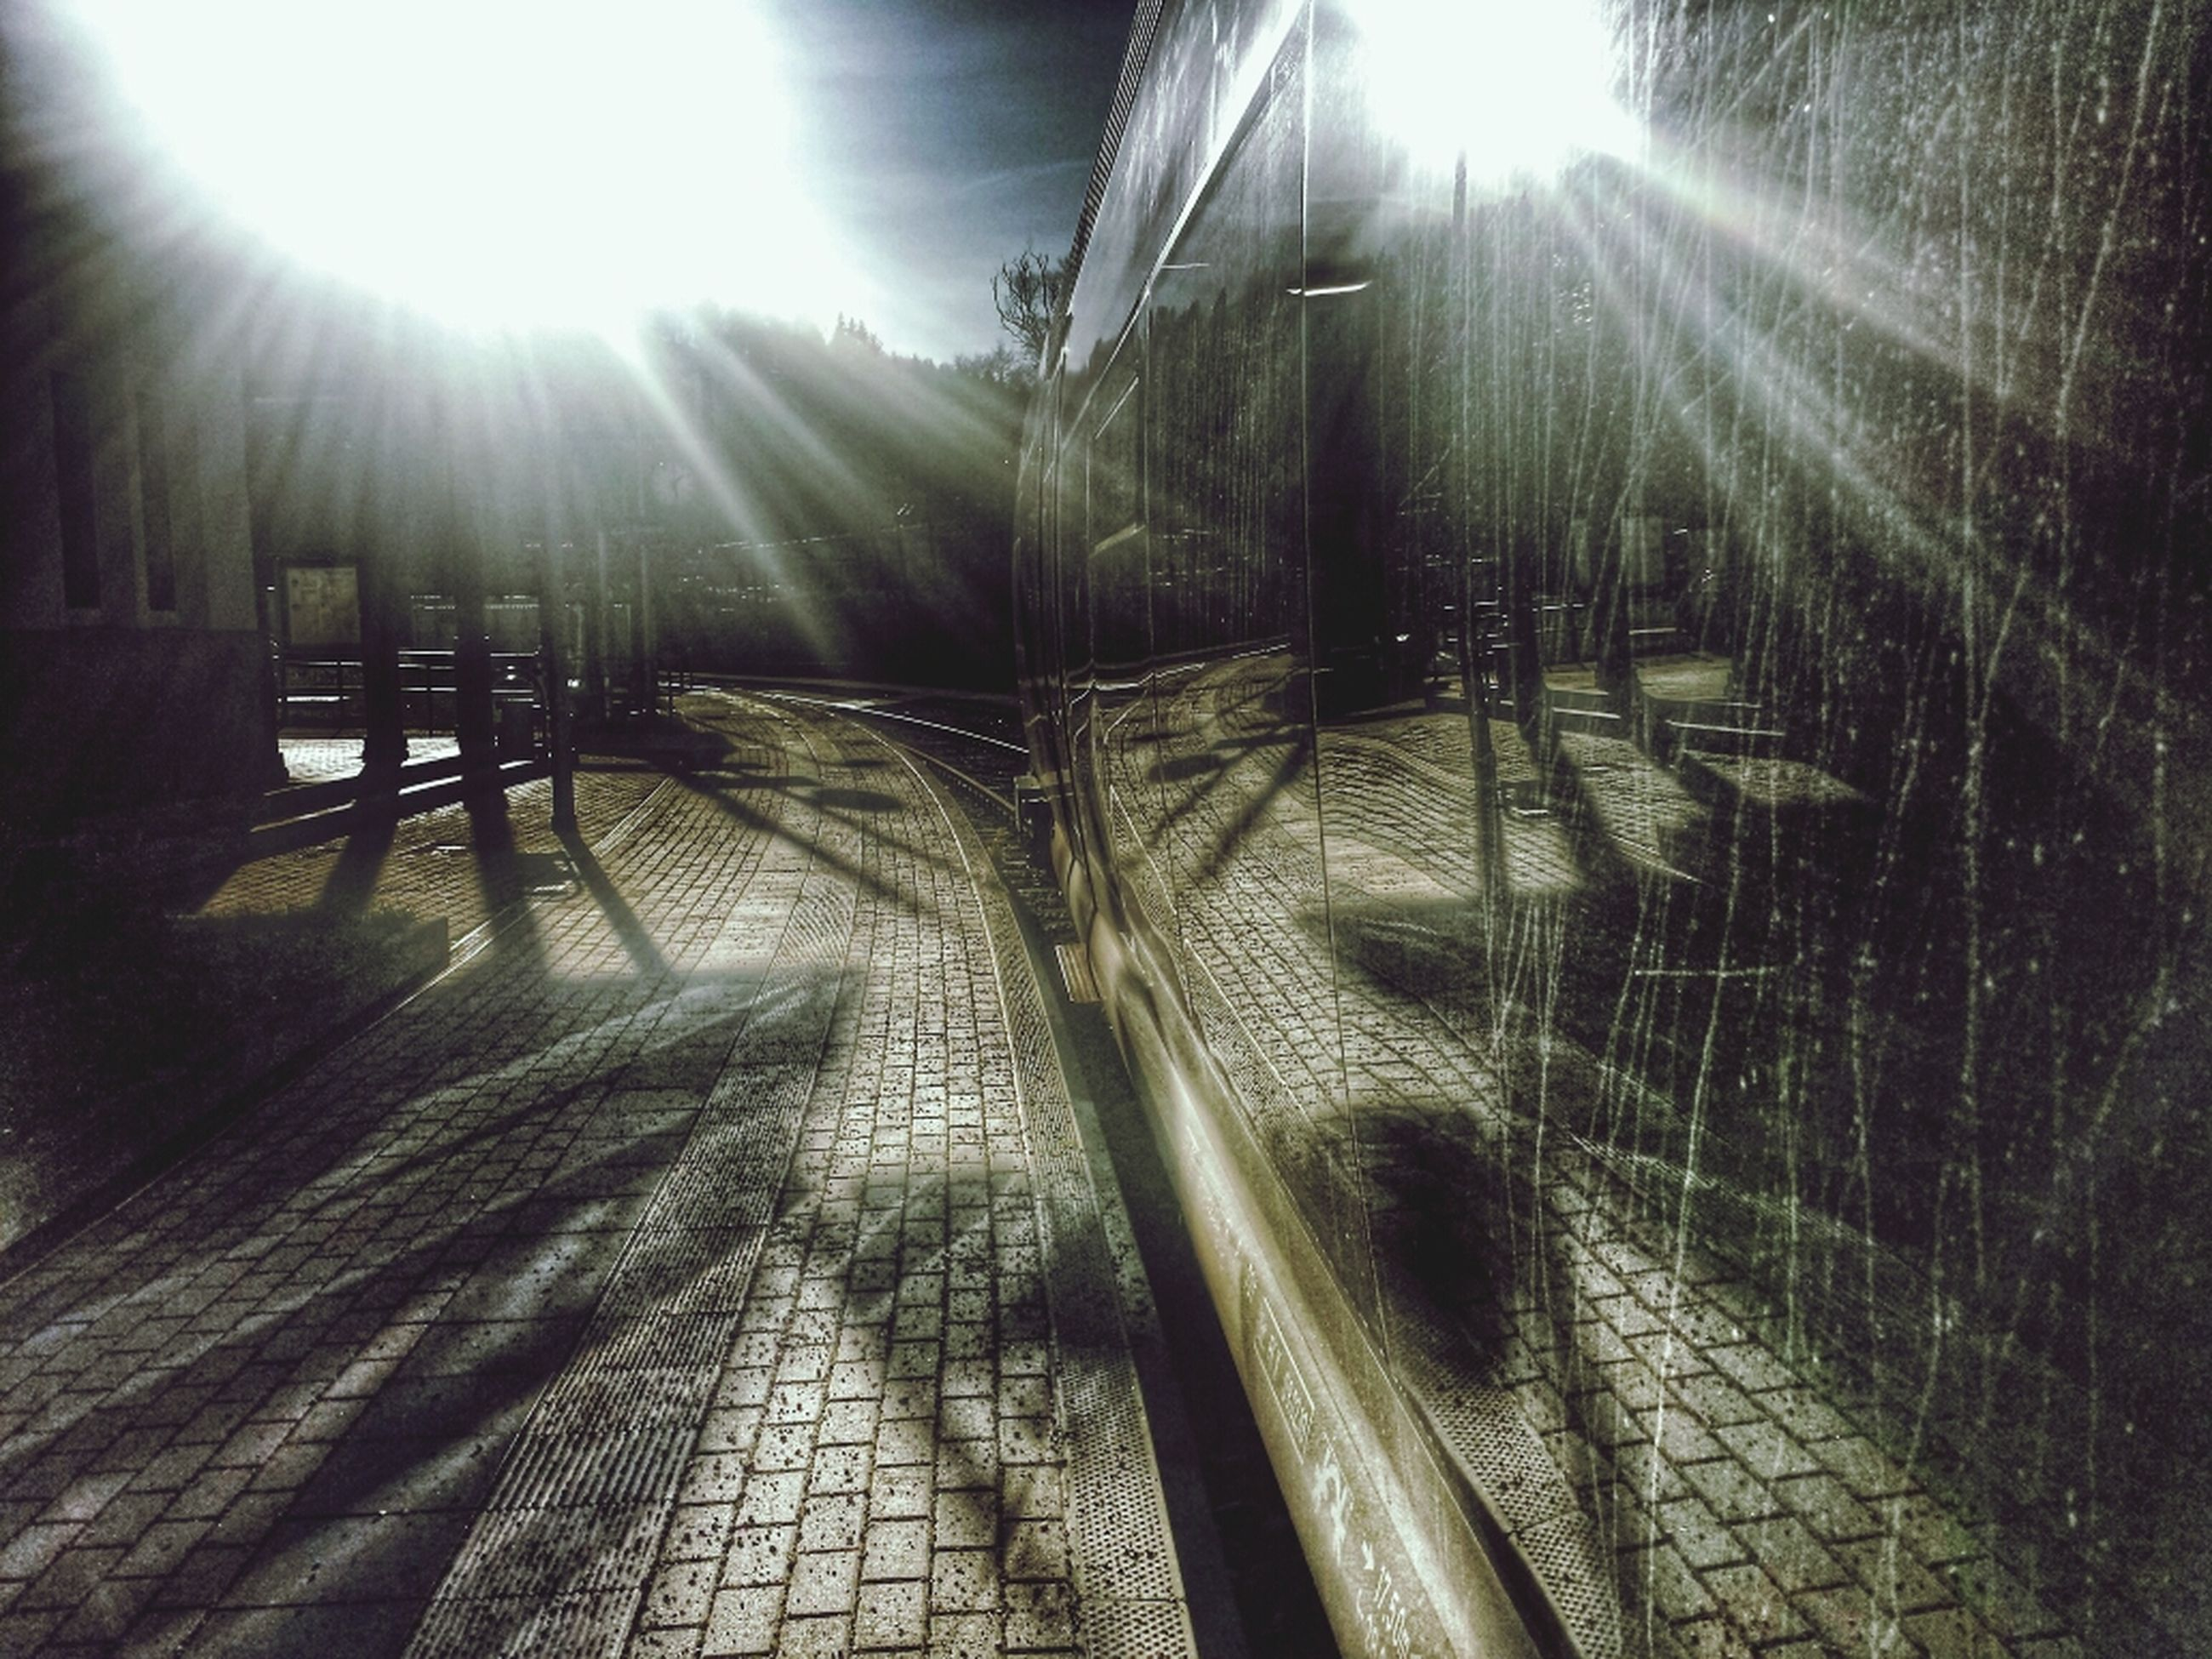 sun, sunbeam, lens flare, sunlight, bright, sunny, the way forward, brightly lit, nature, day, shiny, tranquility, outdoors, no people, back lit, shadow, diminishing perspective, shining, sky, vanishing point